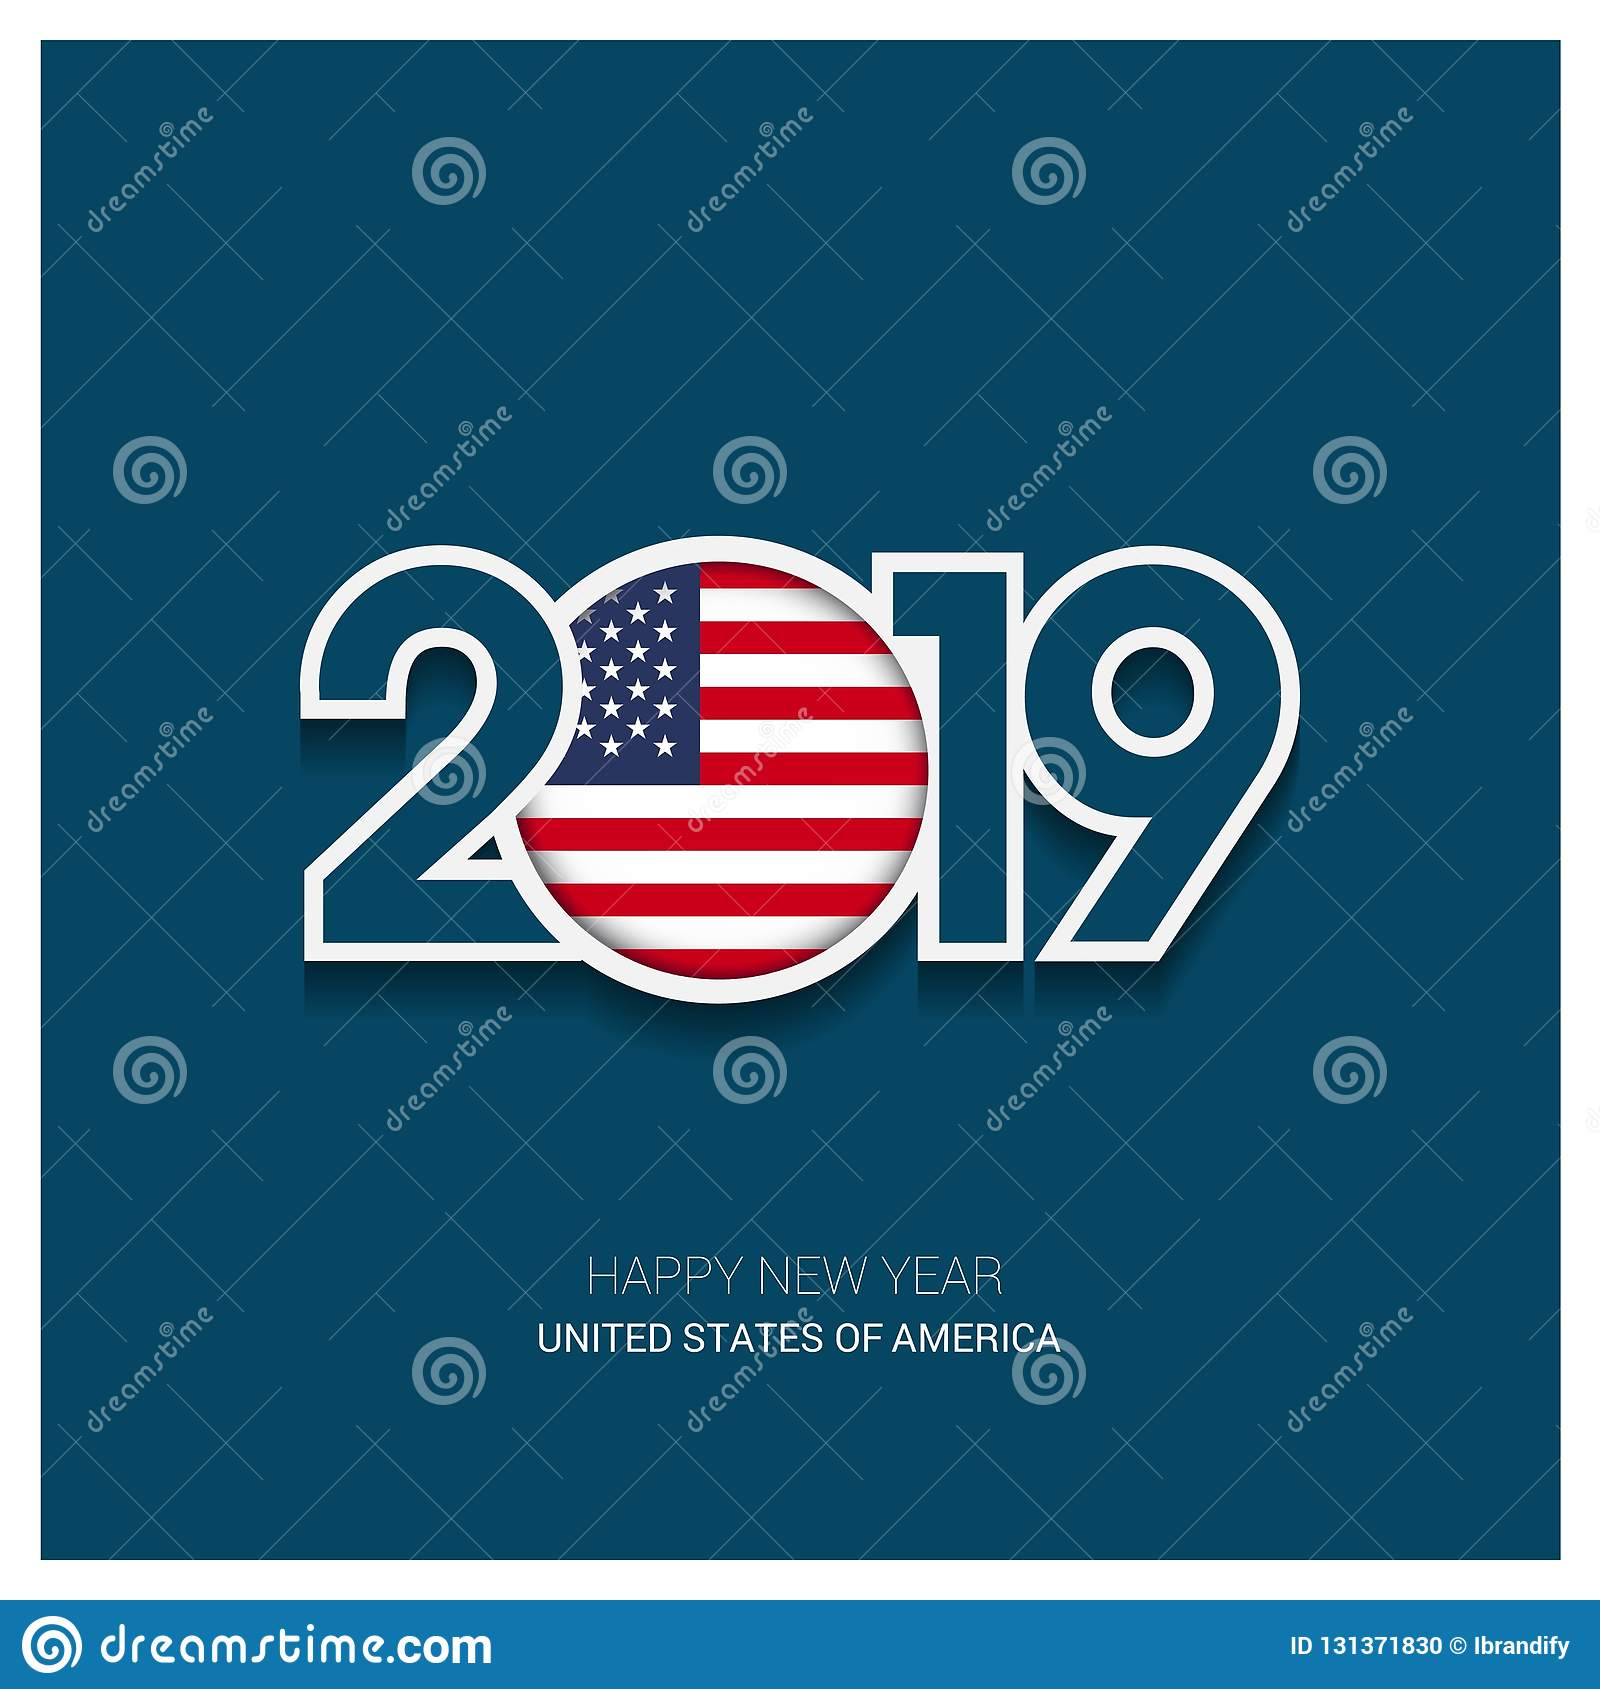 2019 United States of America Typography, Happy New Year Background